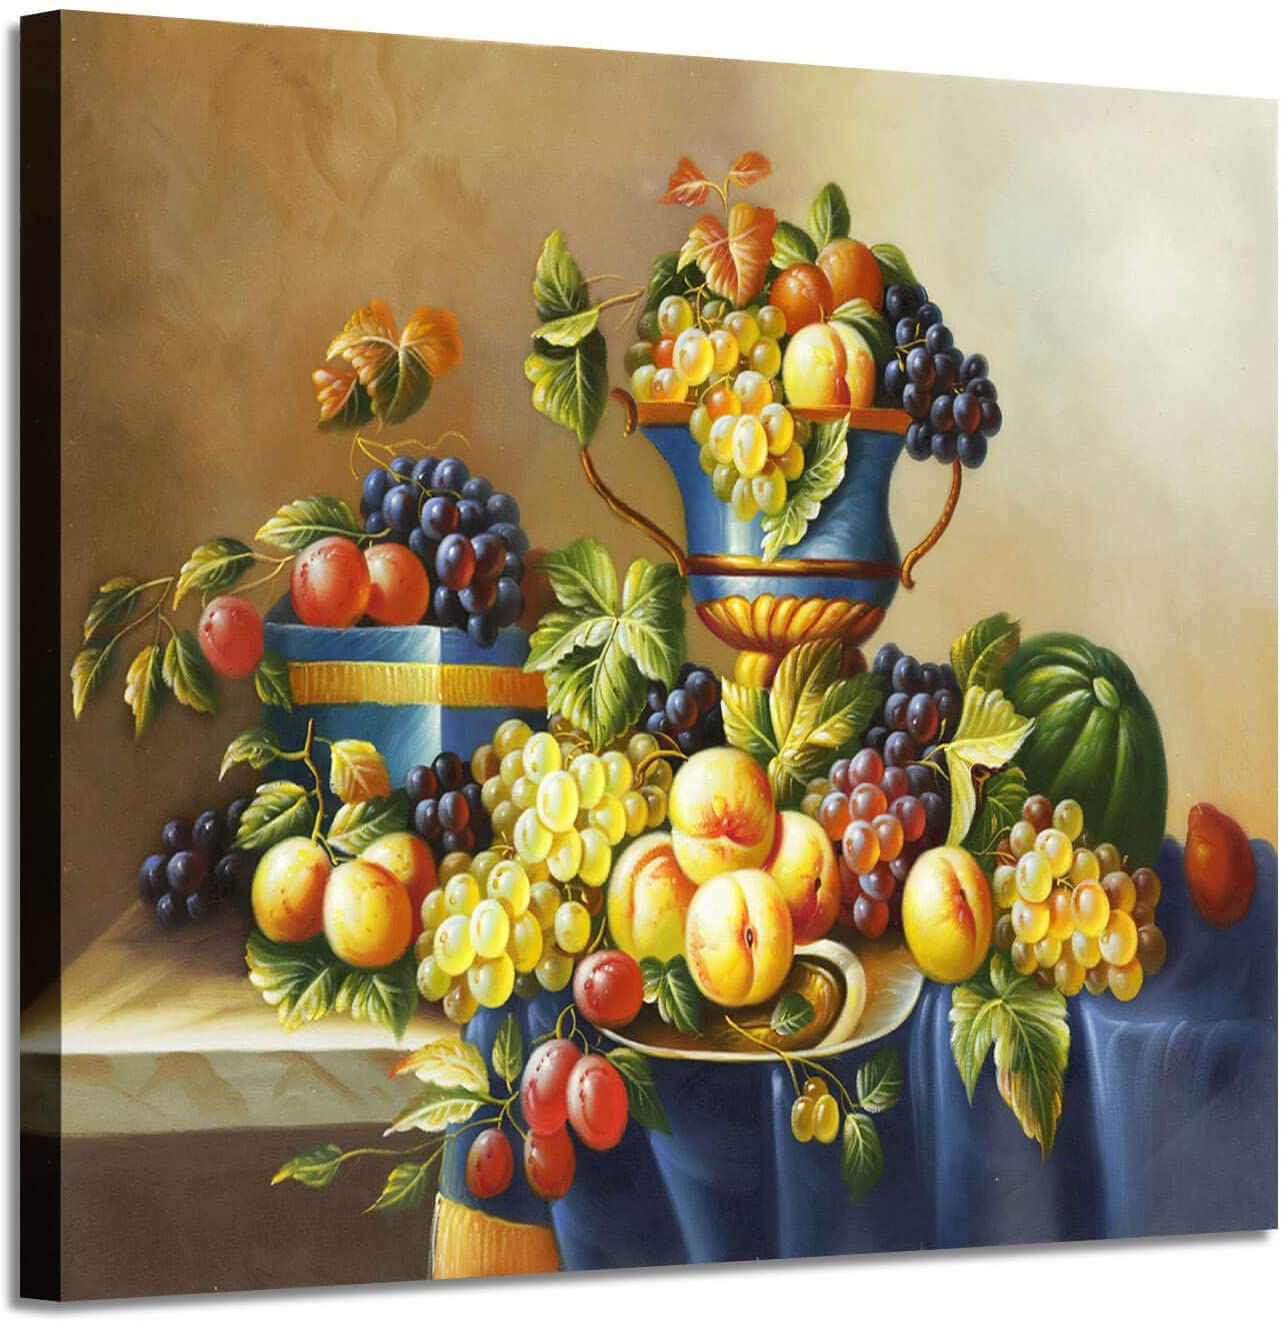 "Fruit Artwork Vintage Wall Art: Fresh Pictures Graphic Art Print on Canvas for Kitchen & Dining Room (24"" x 18"")"